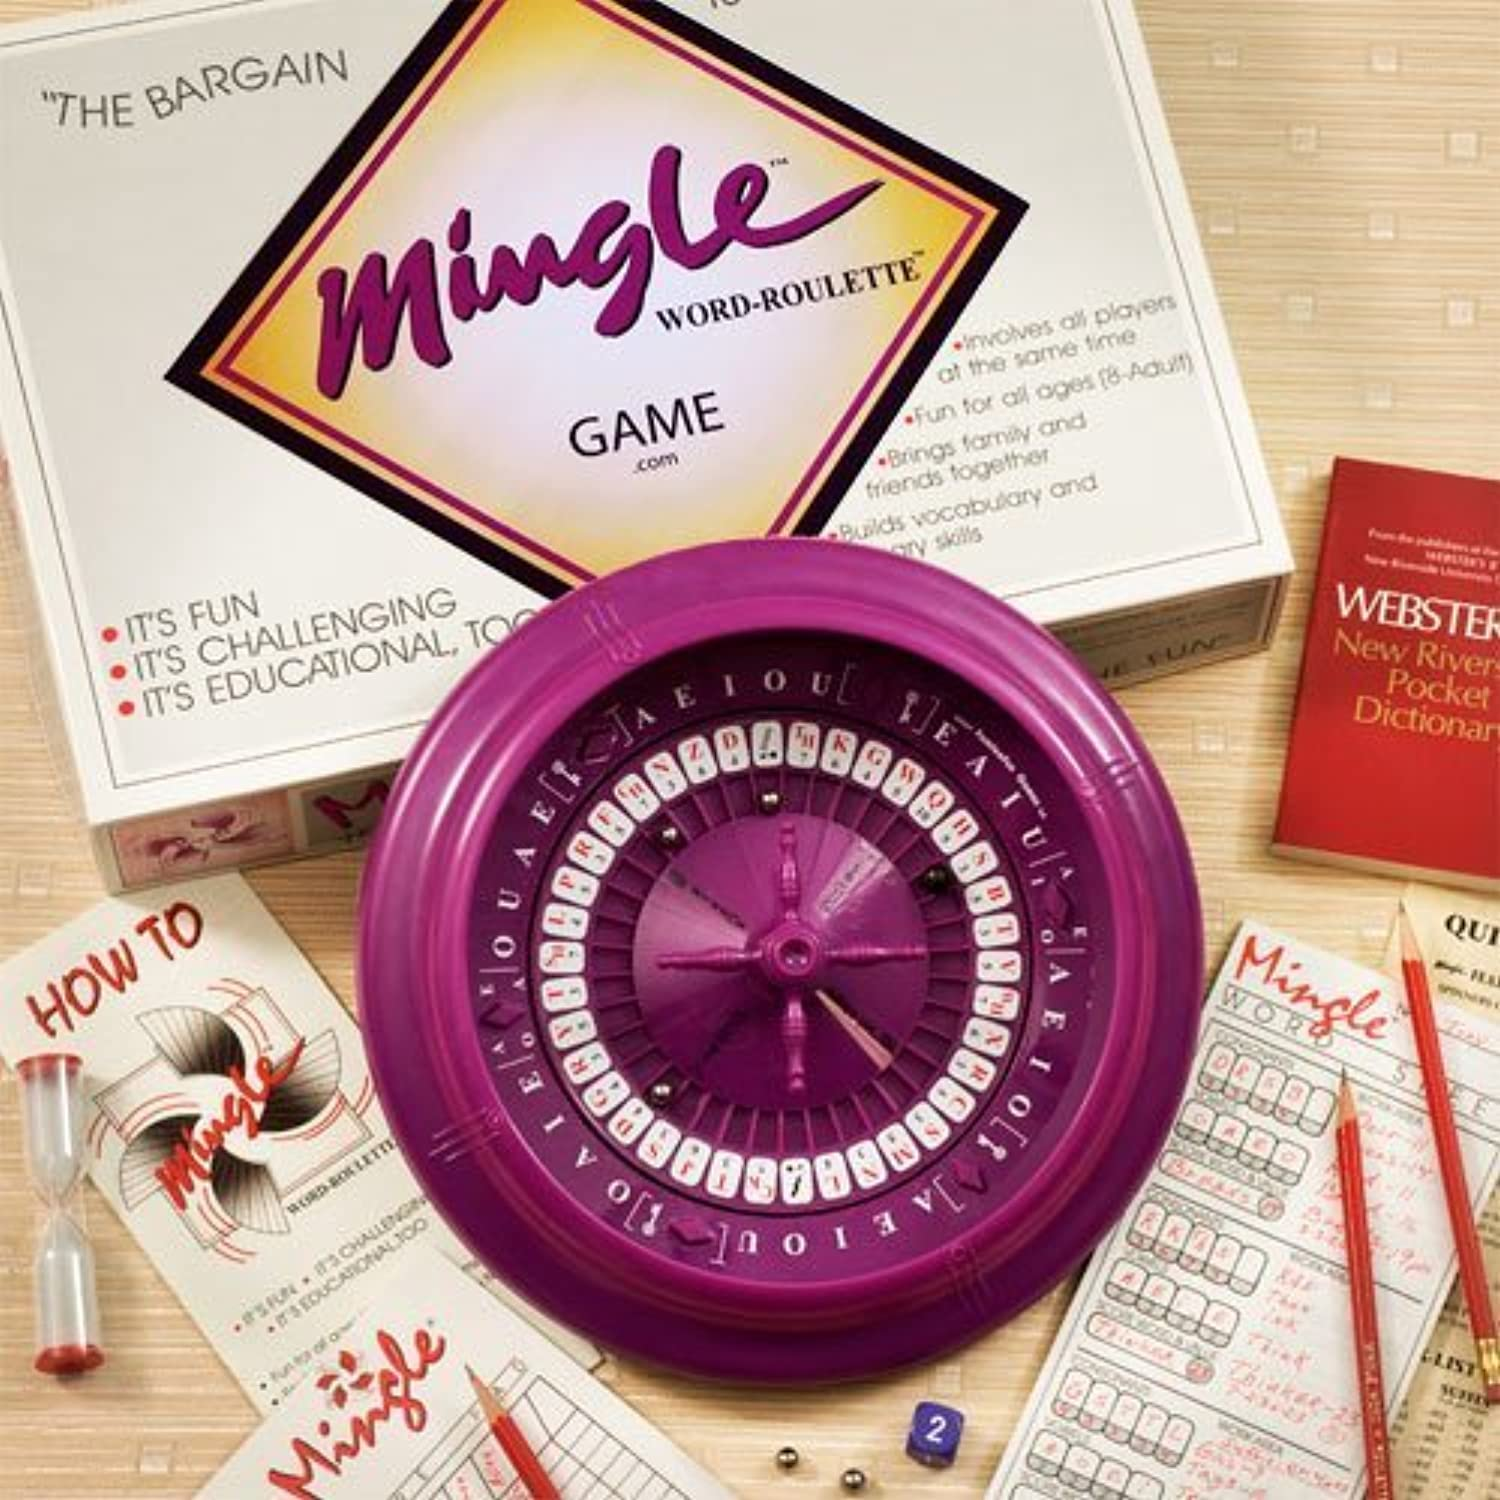 Mingle Word-Roulette Game... Home & School Edition by Mingle Word-Roulette Game